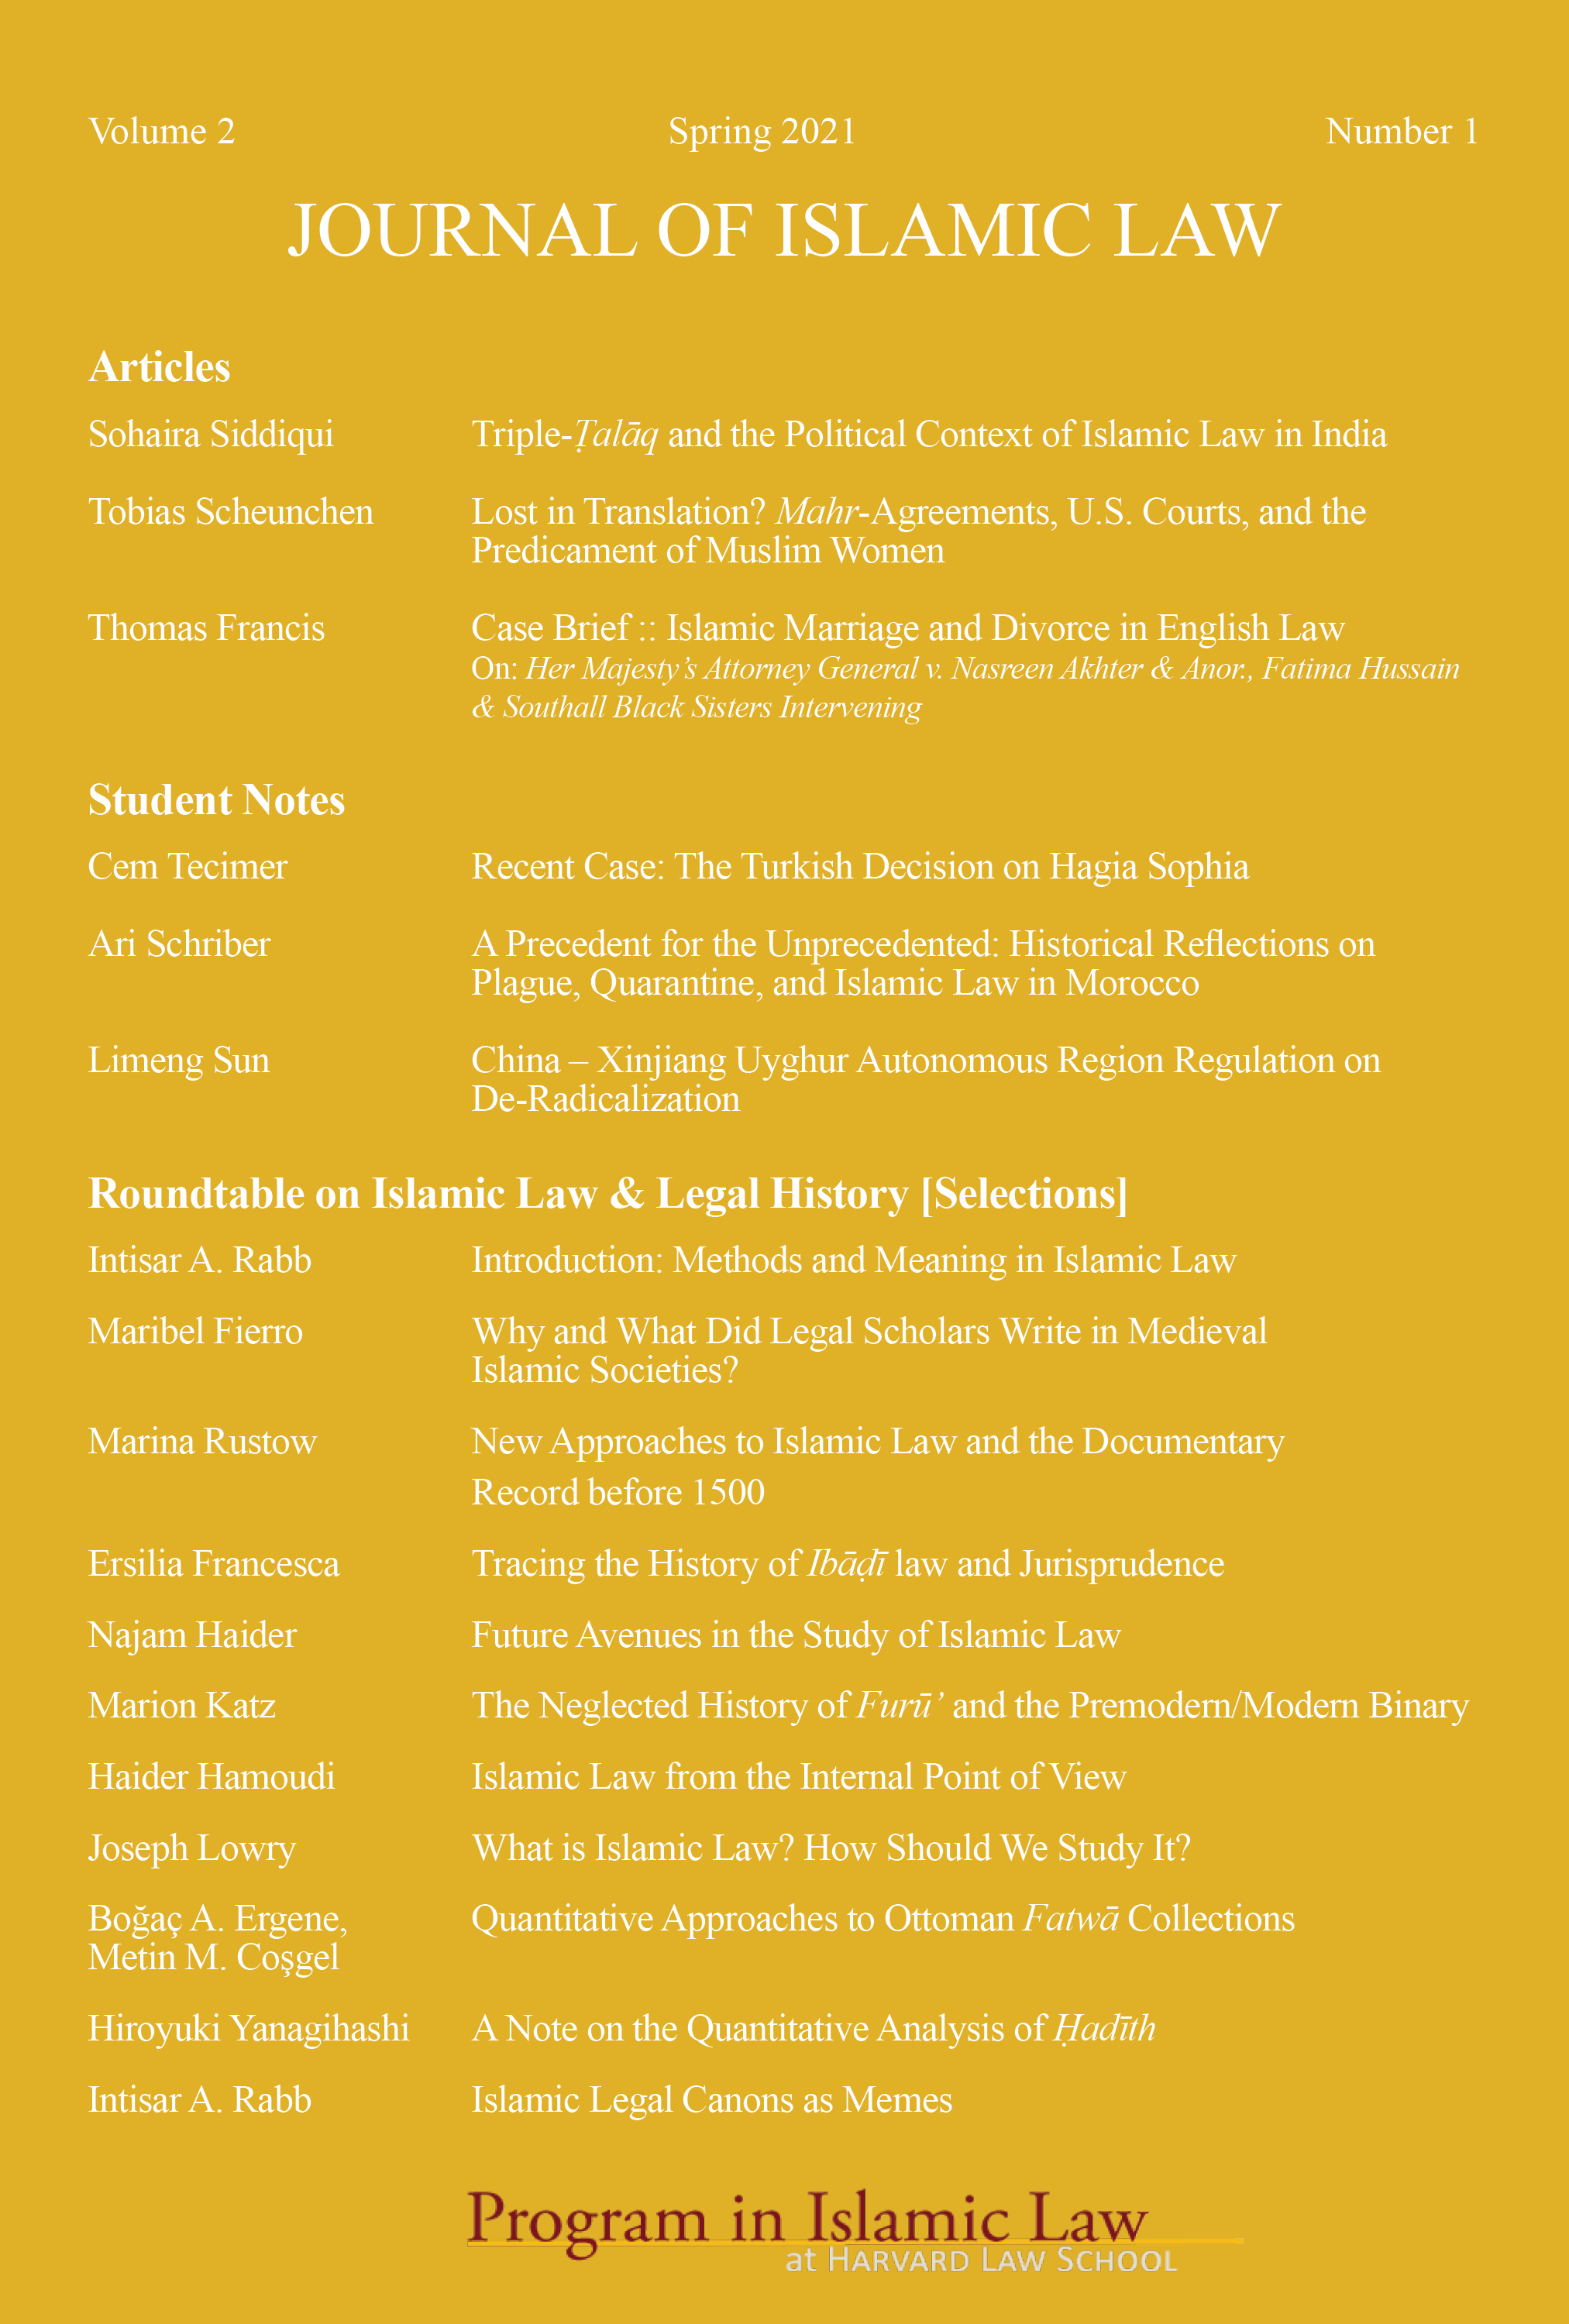 Journal of Islamic Law Volume 2, Number 1 (Spring 2021) Table of Contents